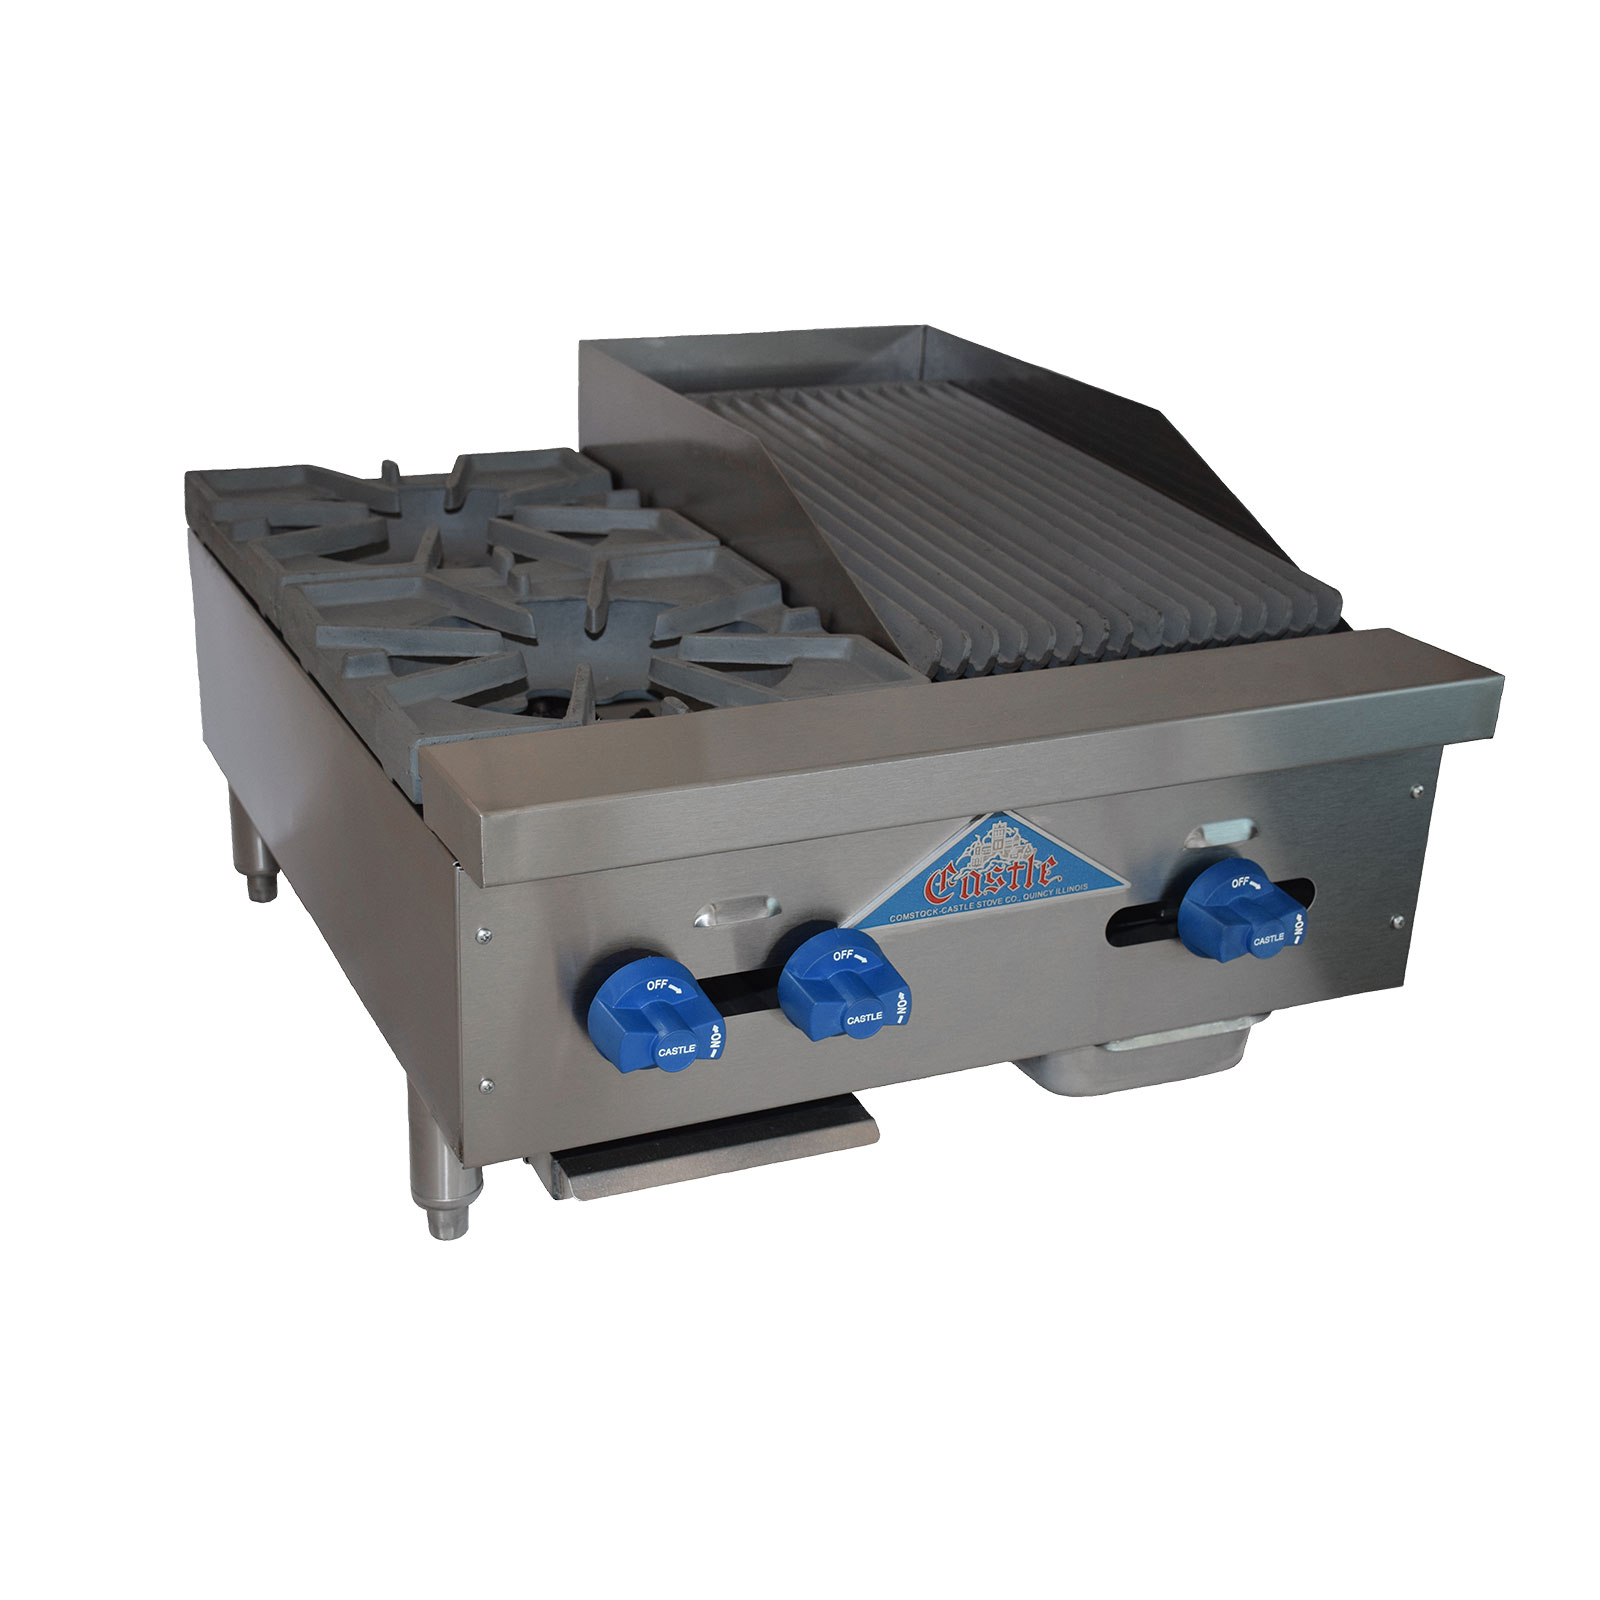 Comstock-Castle FHP24-12-1LB griddle / charbroiler, gas, countertop